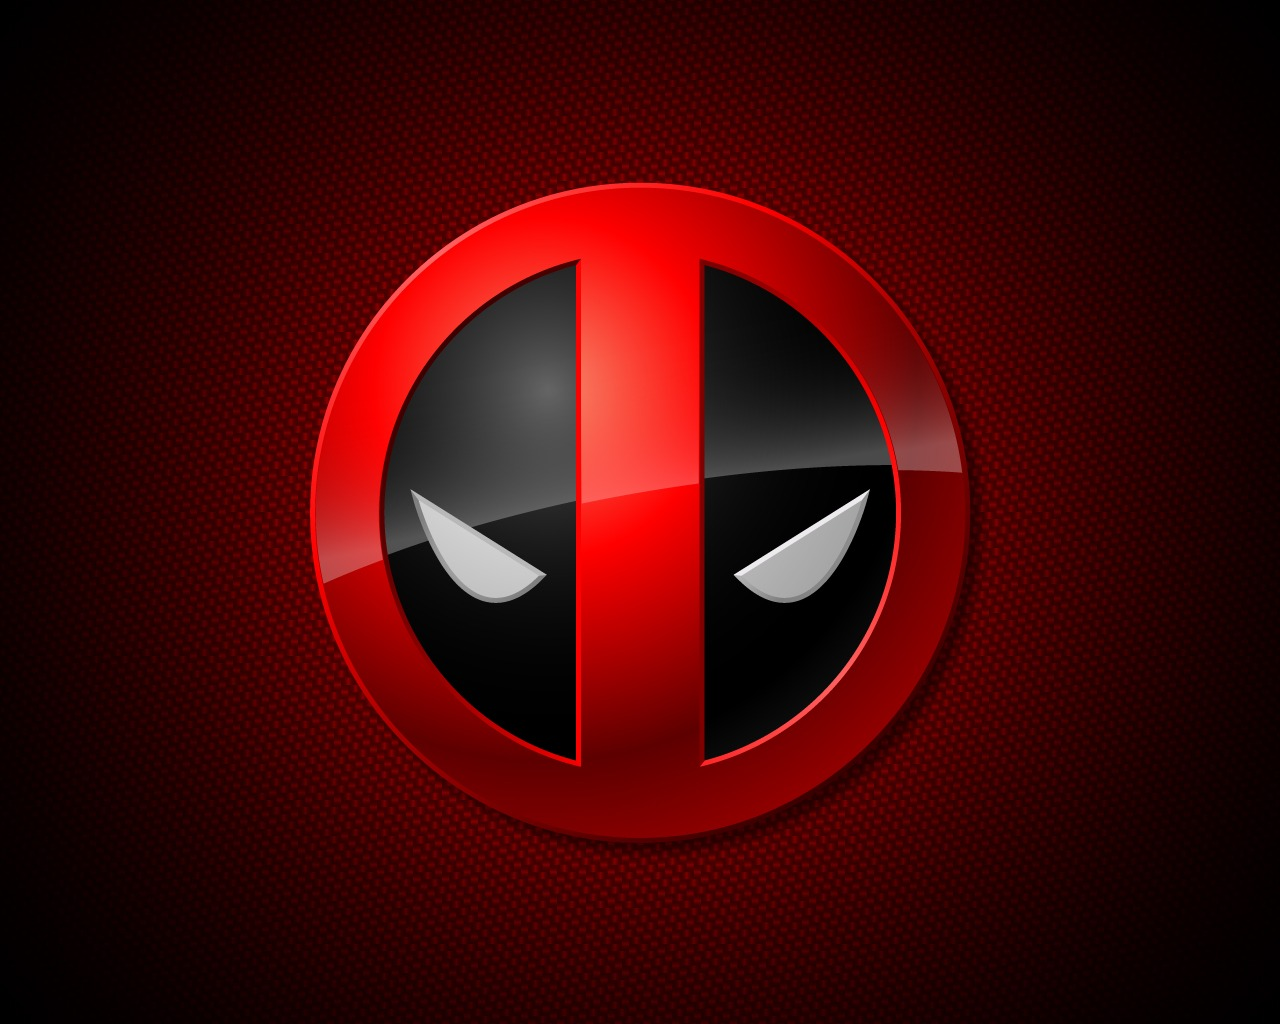 Image   2293 marvel deadpool simple logo wallpaper 1280x1024 customity 1280x1024